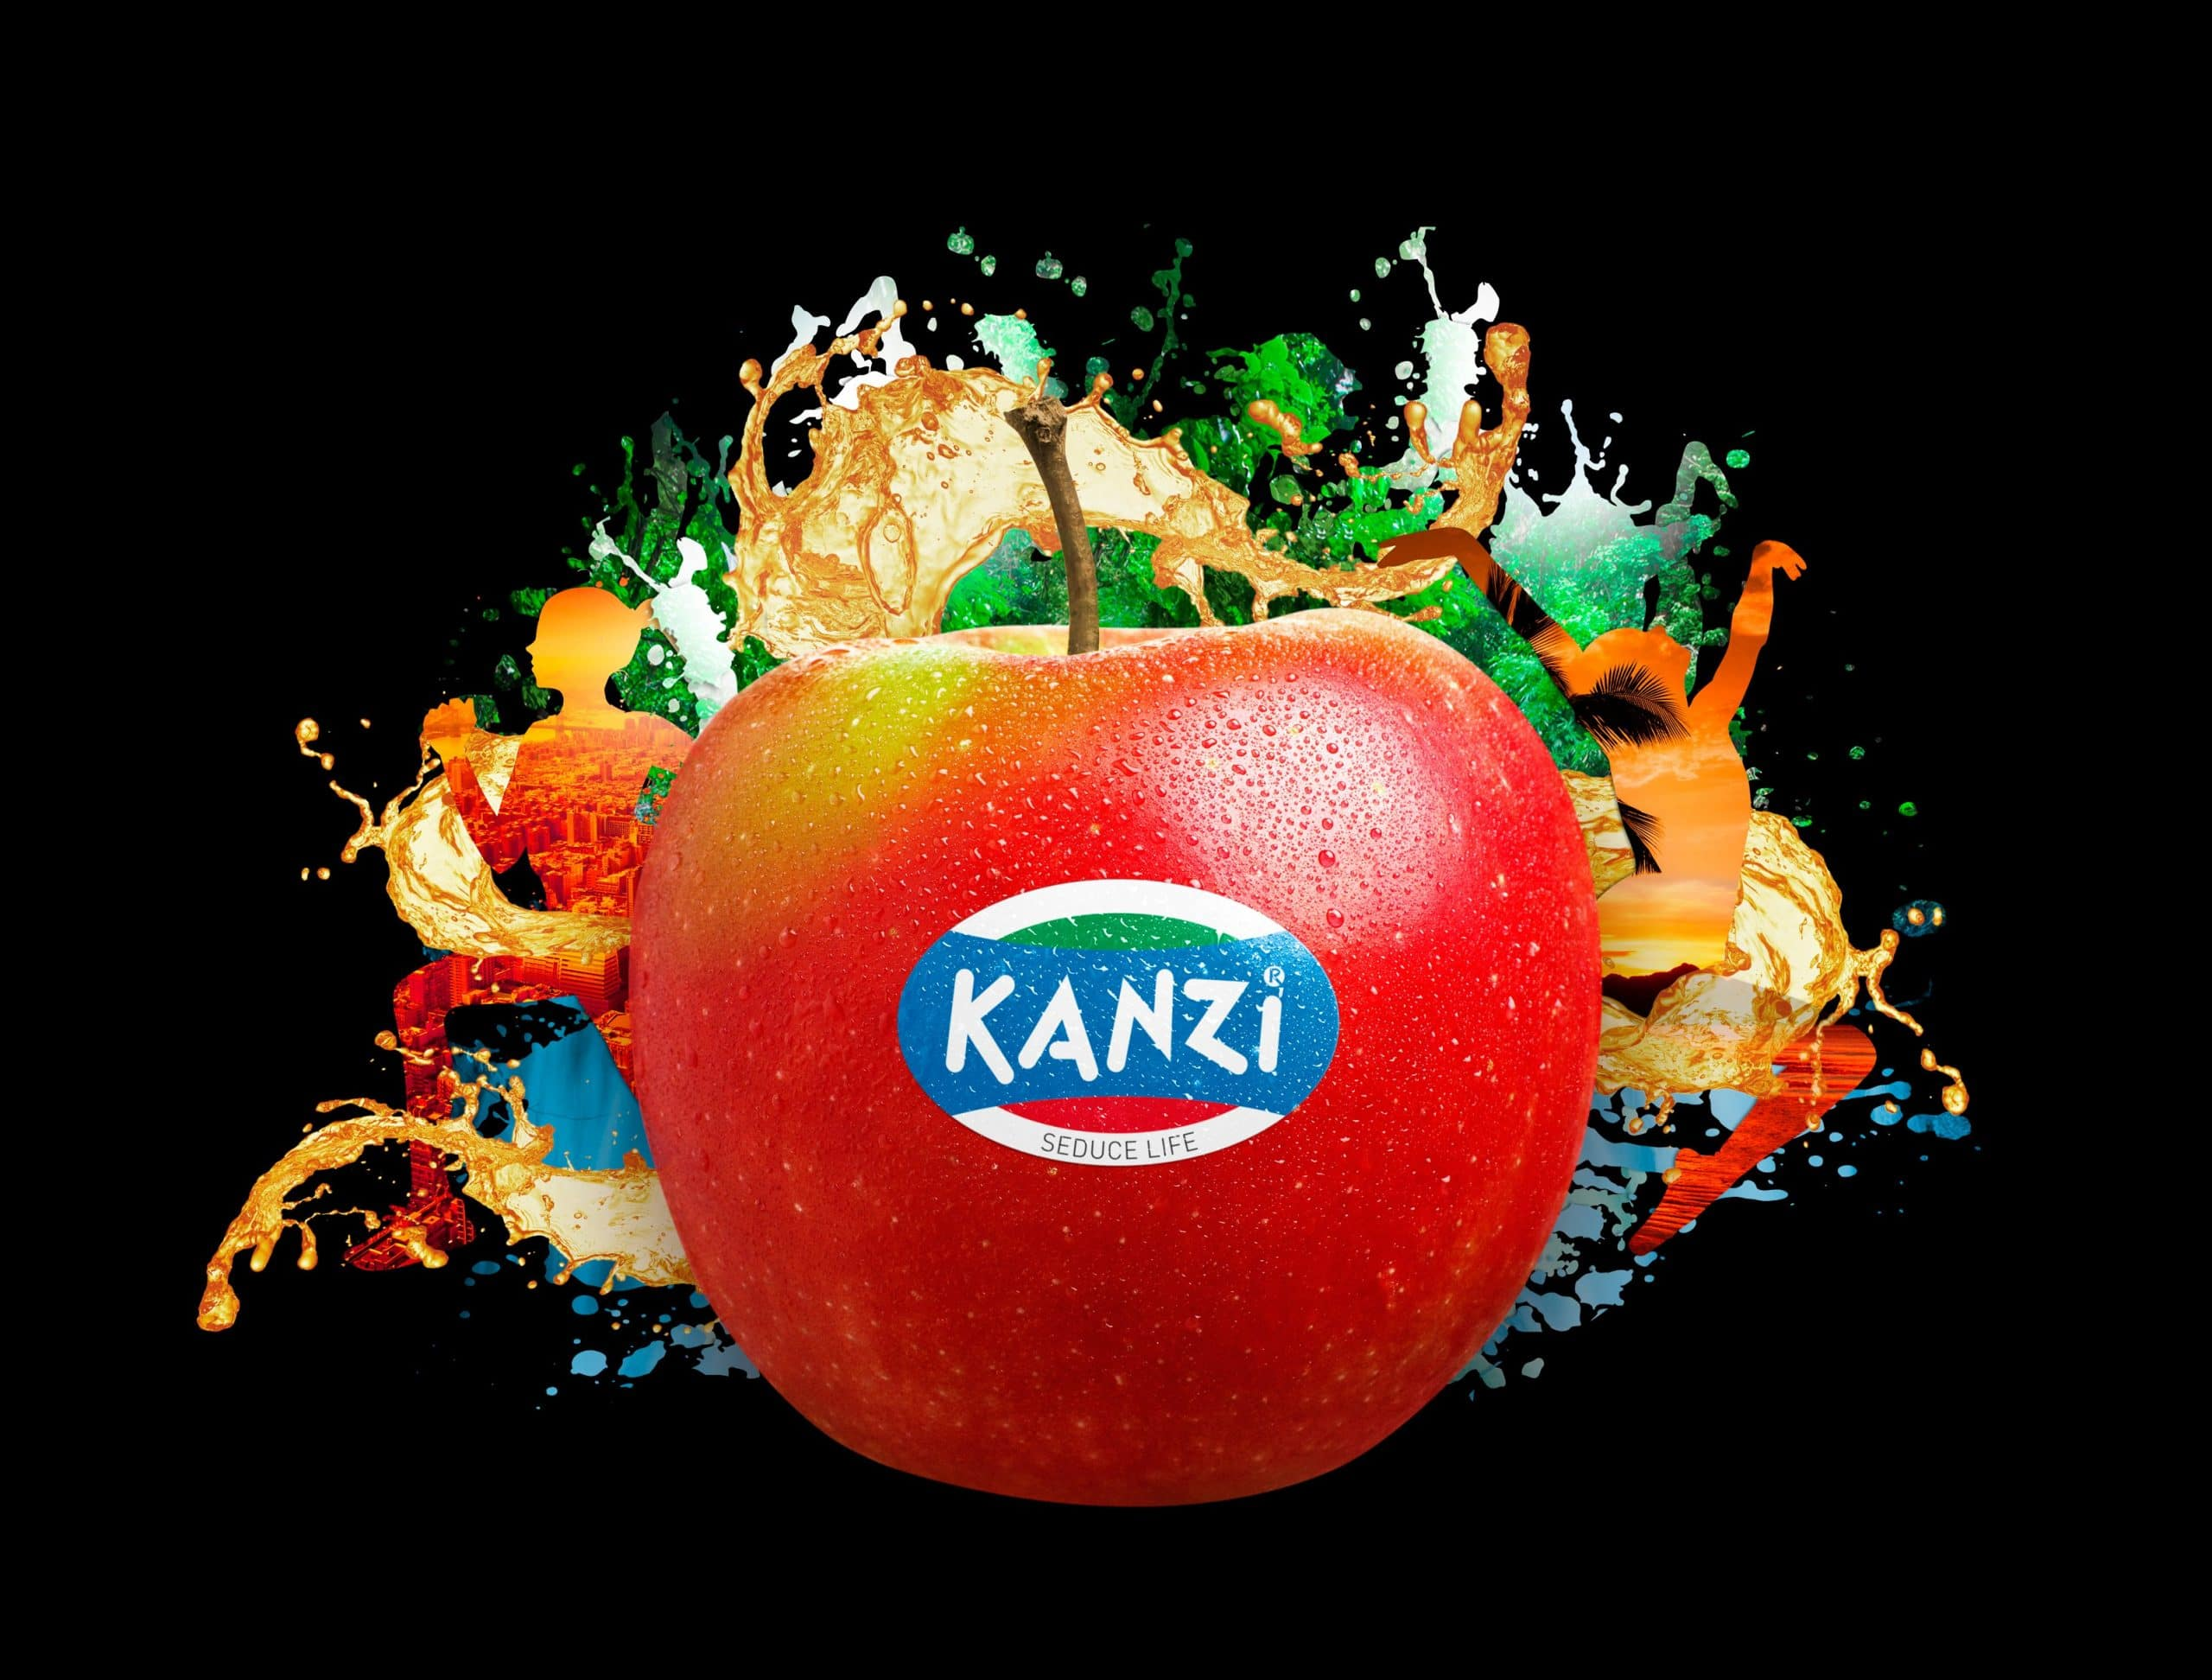 Kanzi Apple